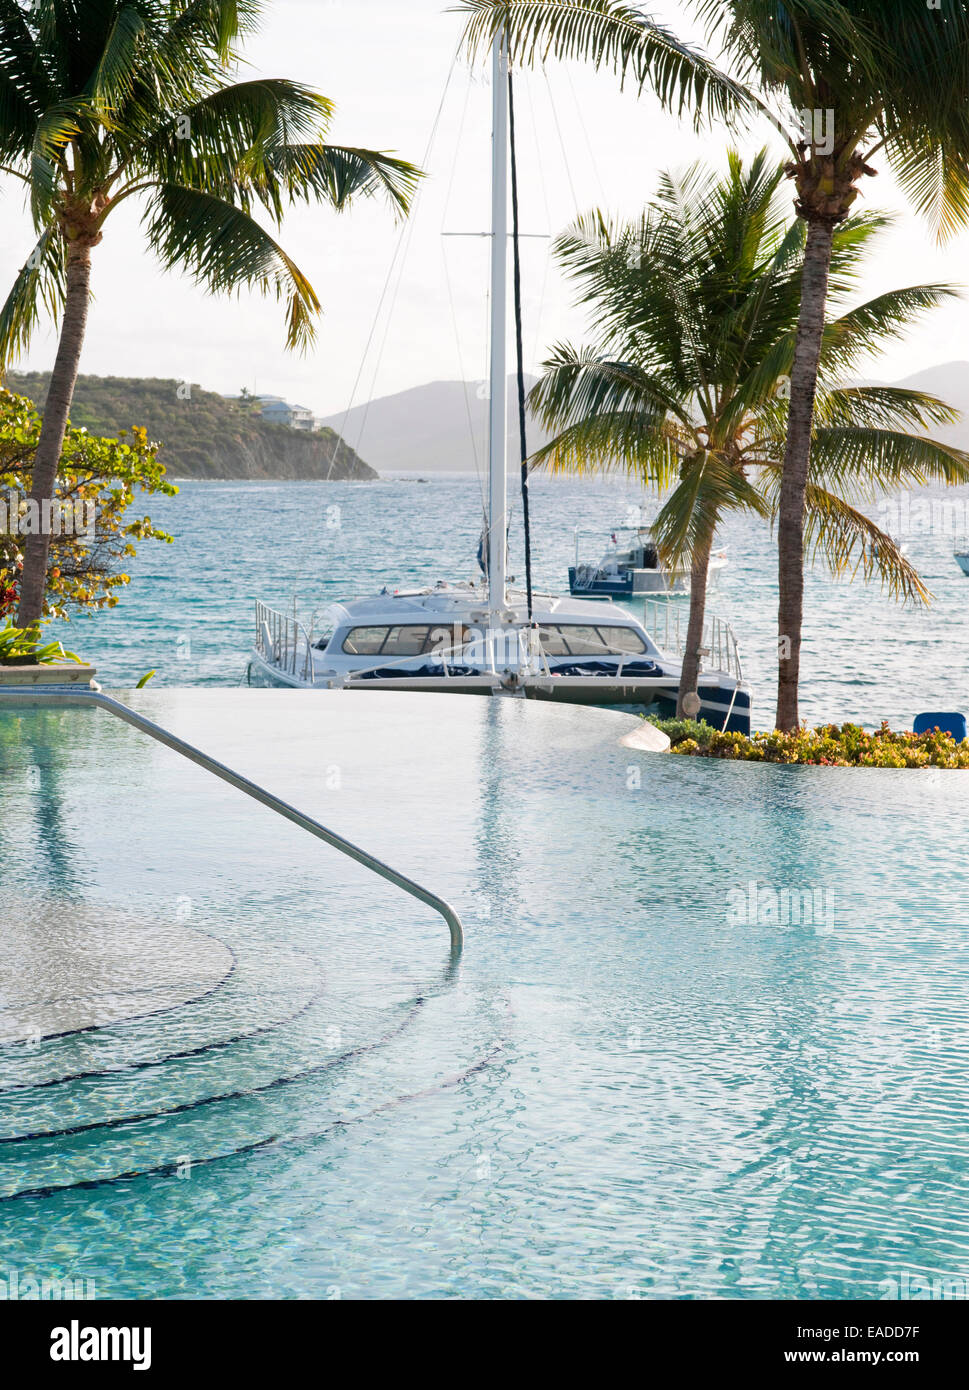 infinity pool and ocean in tropical Caribbean setting - Stock Image